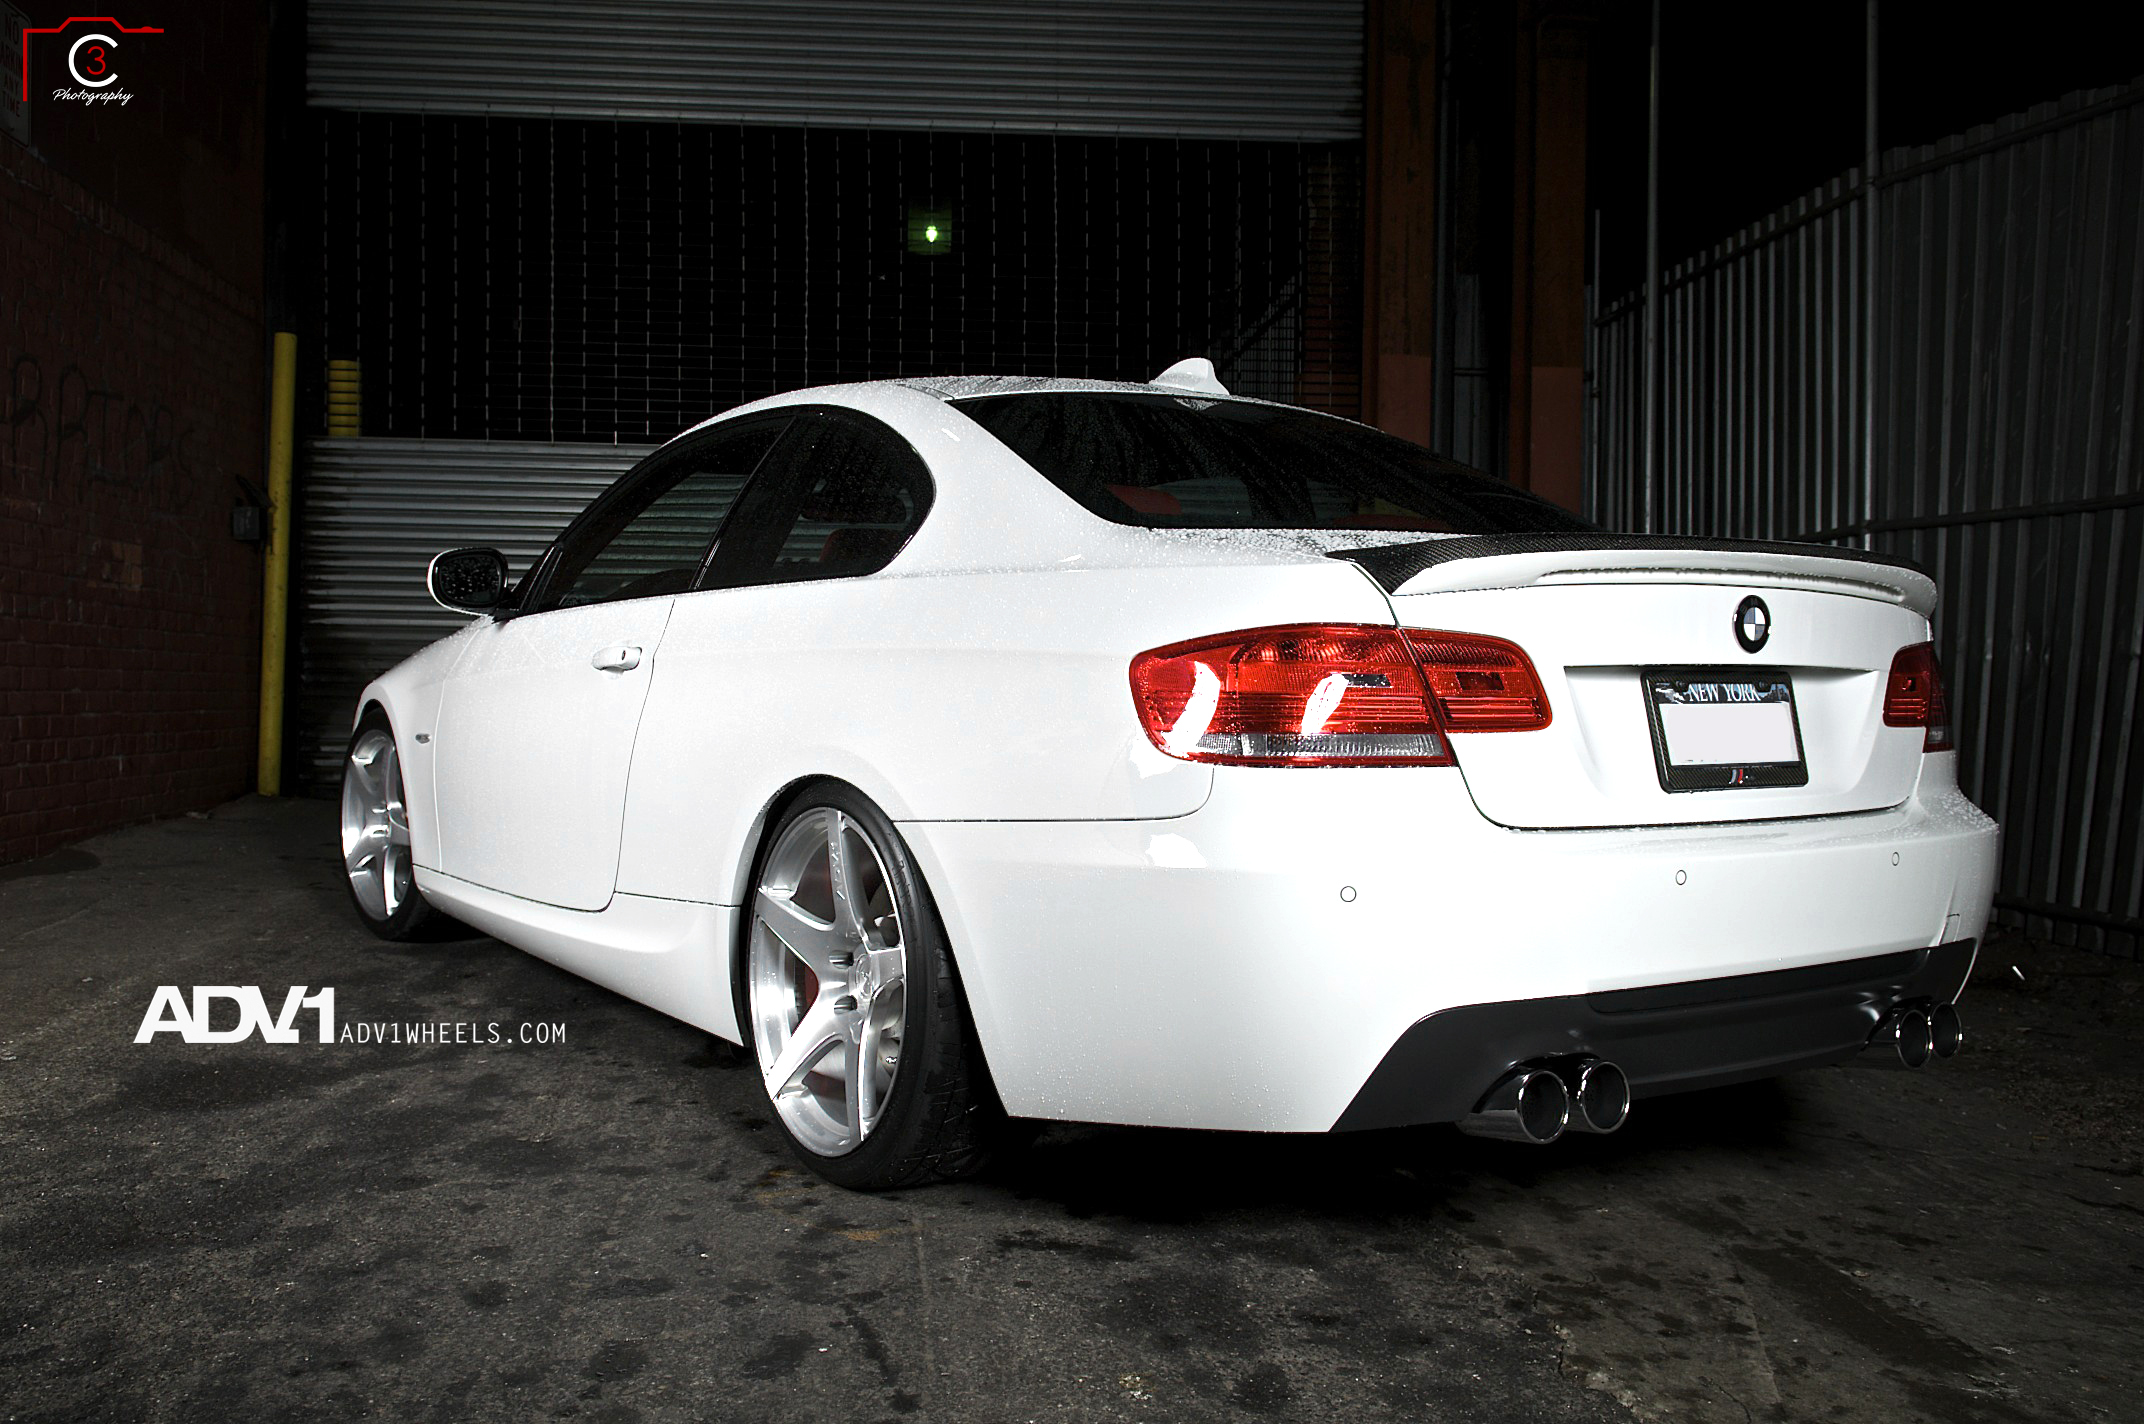 bmw 335i on adv5.1 | Flickr - Photo Sharing!